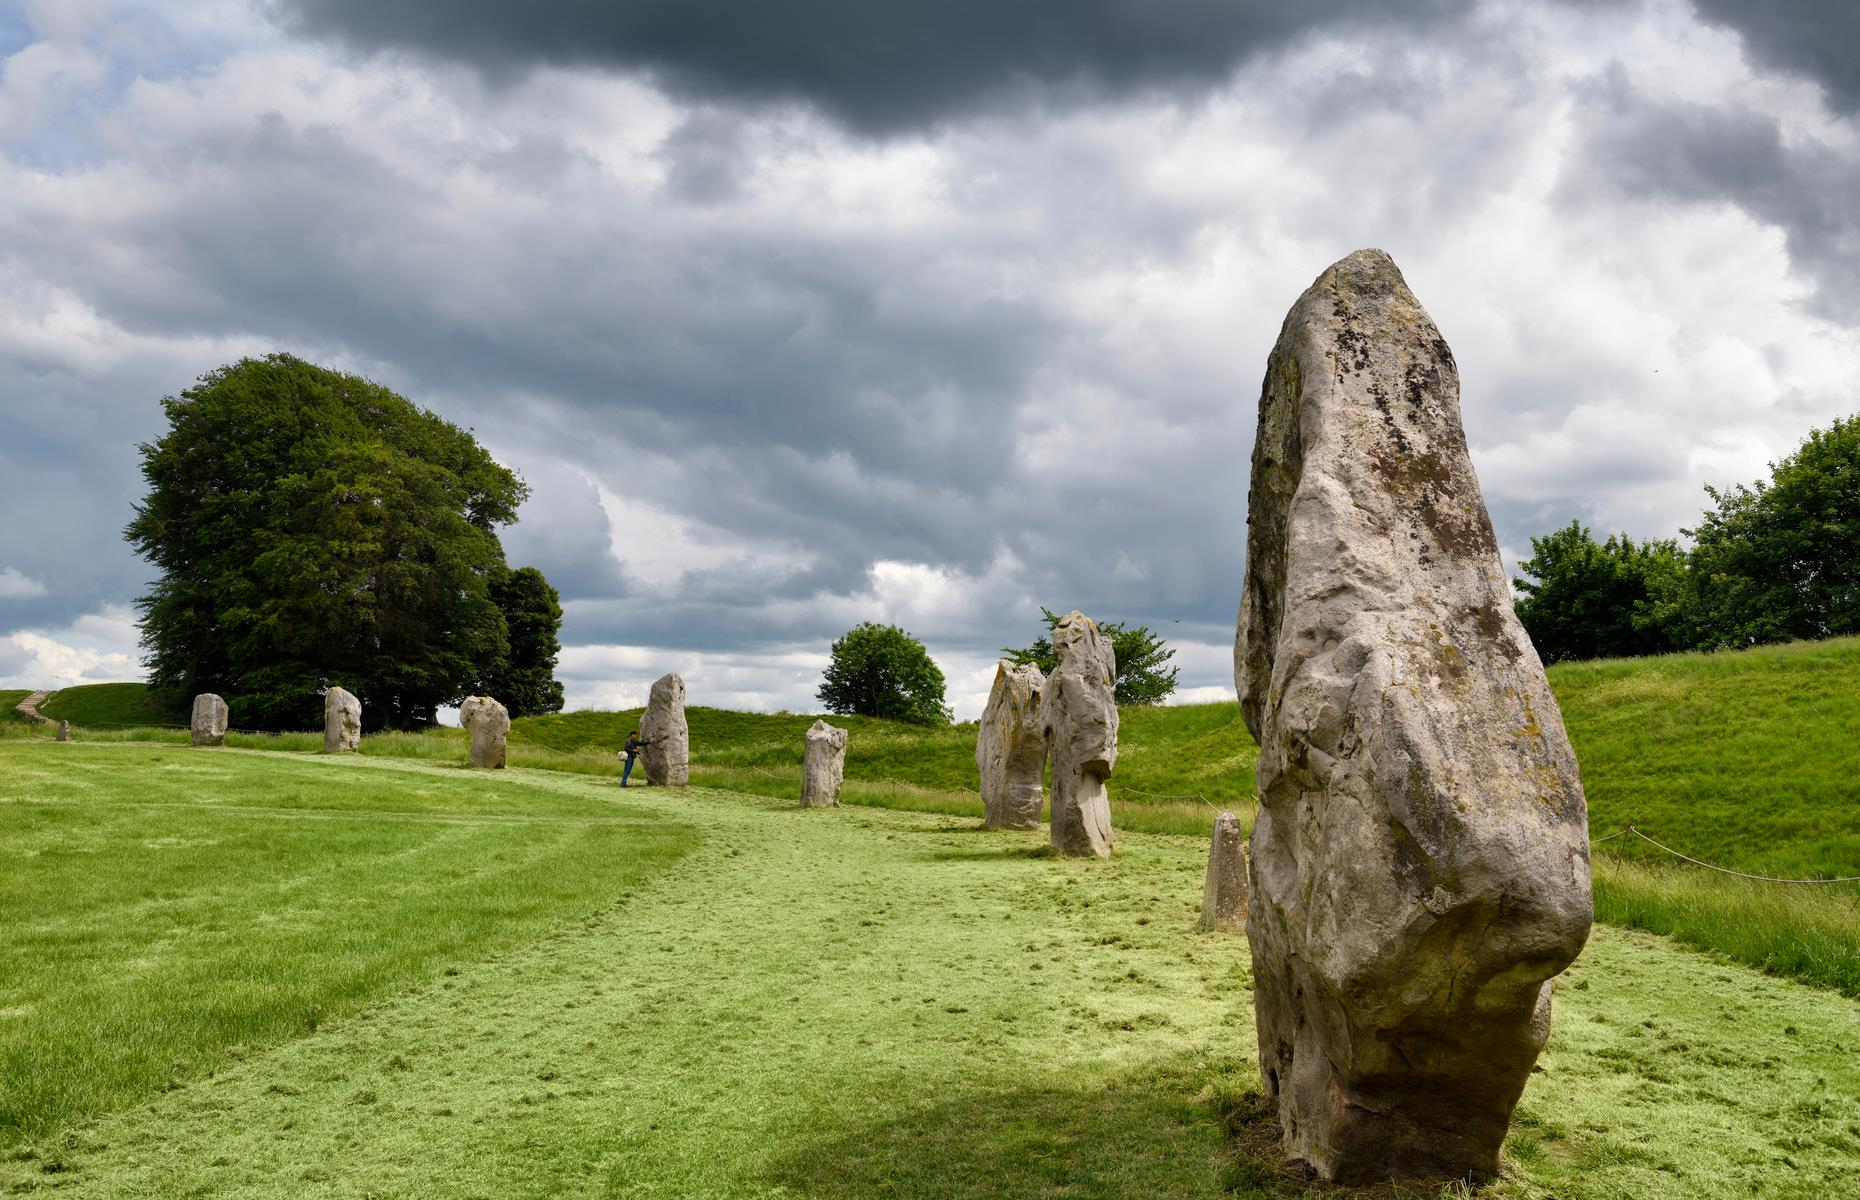 Slide 23 of 41: Just a 40-minute drive north from Stonehenge is the quiet village of Avebury, where you'll find the largest stone circle in the world. This architectural sensation, which dates back to Neolithic times, is free to visit and only attracts a fraction of the tourists heading to Stonehenge.  Best of all, you can wander at your leisure between the vast boulders and out of season, you may only have a few local sheep for company.